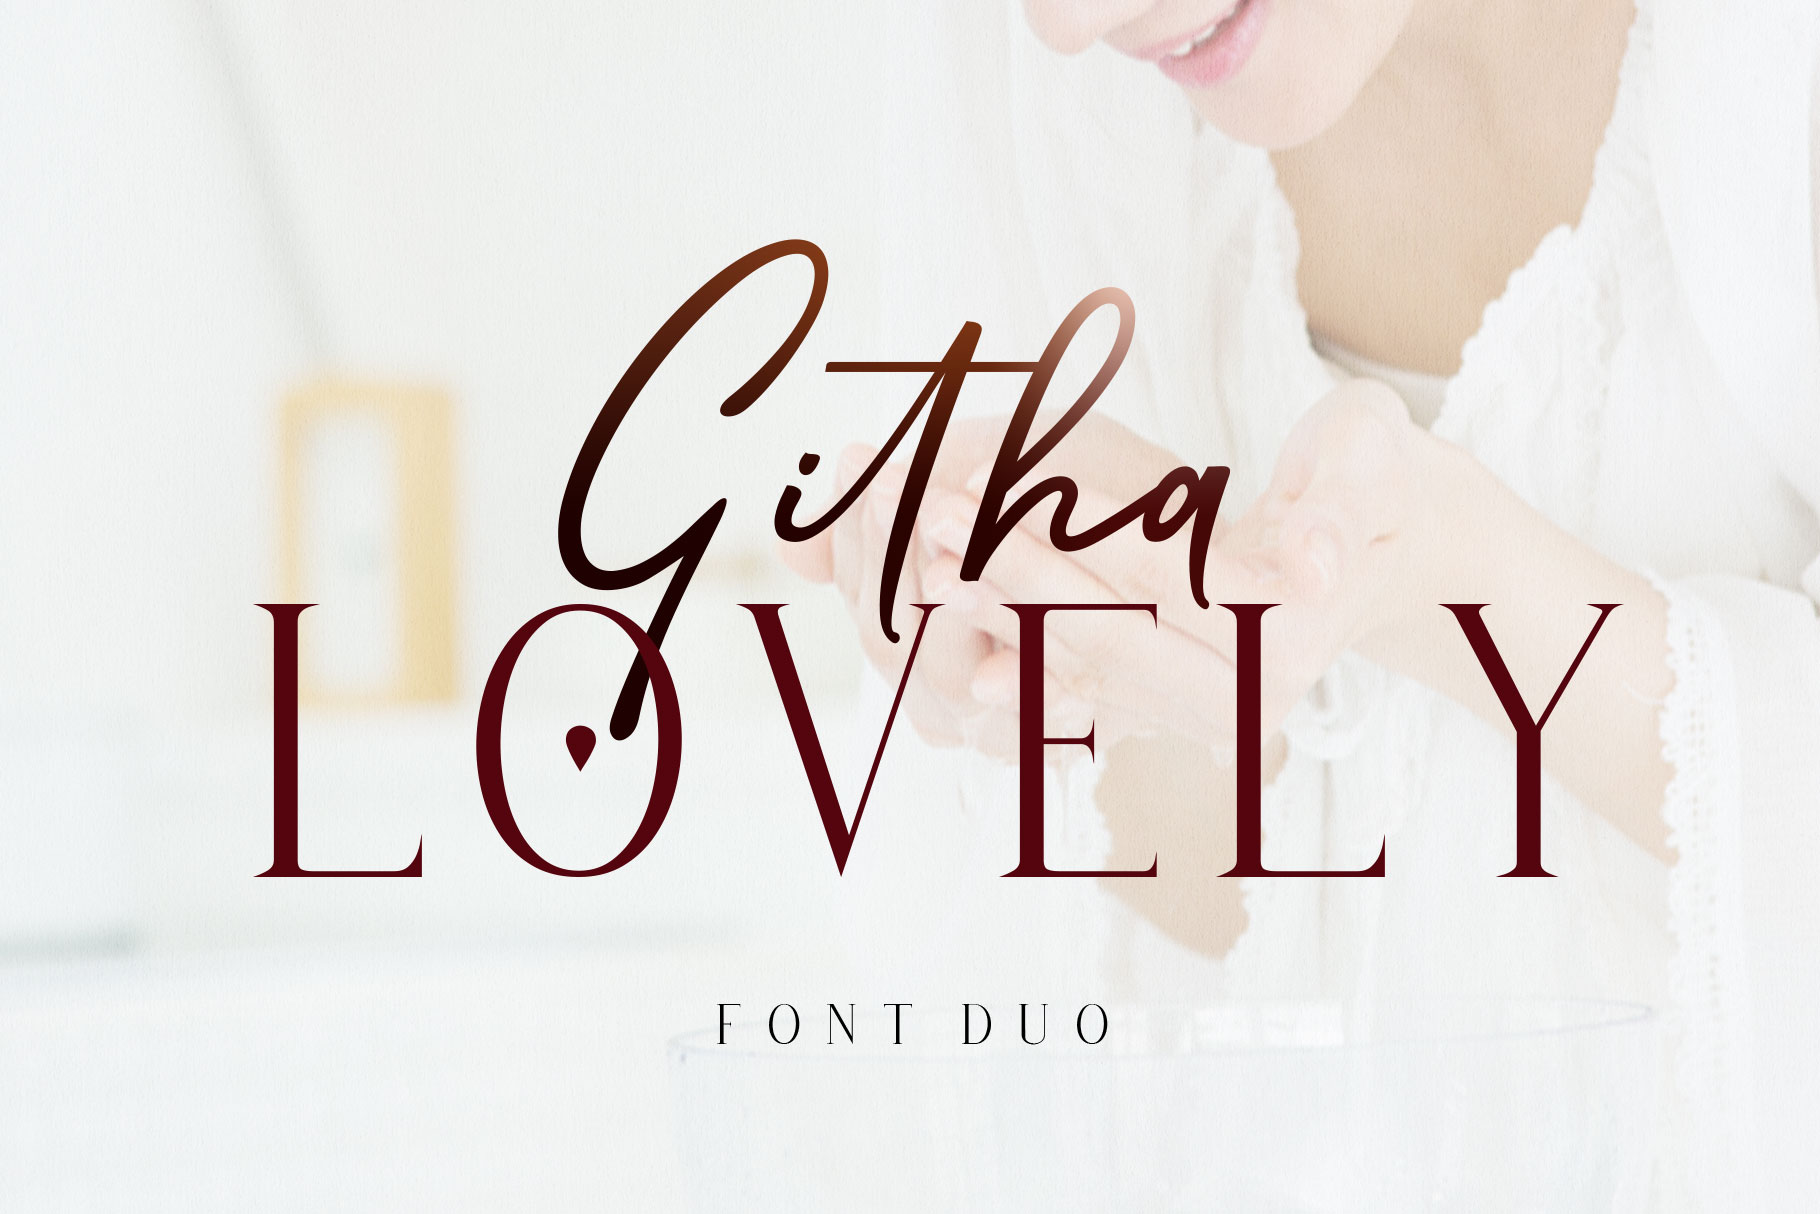 Githa Lovely  Font Duo example image 10